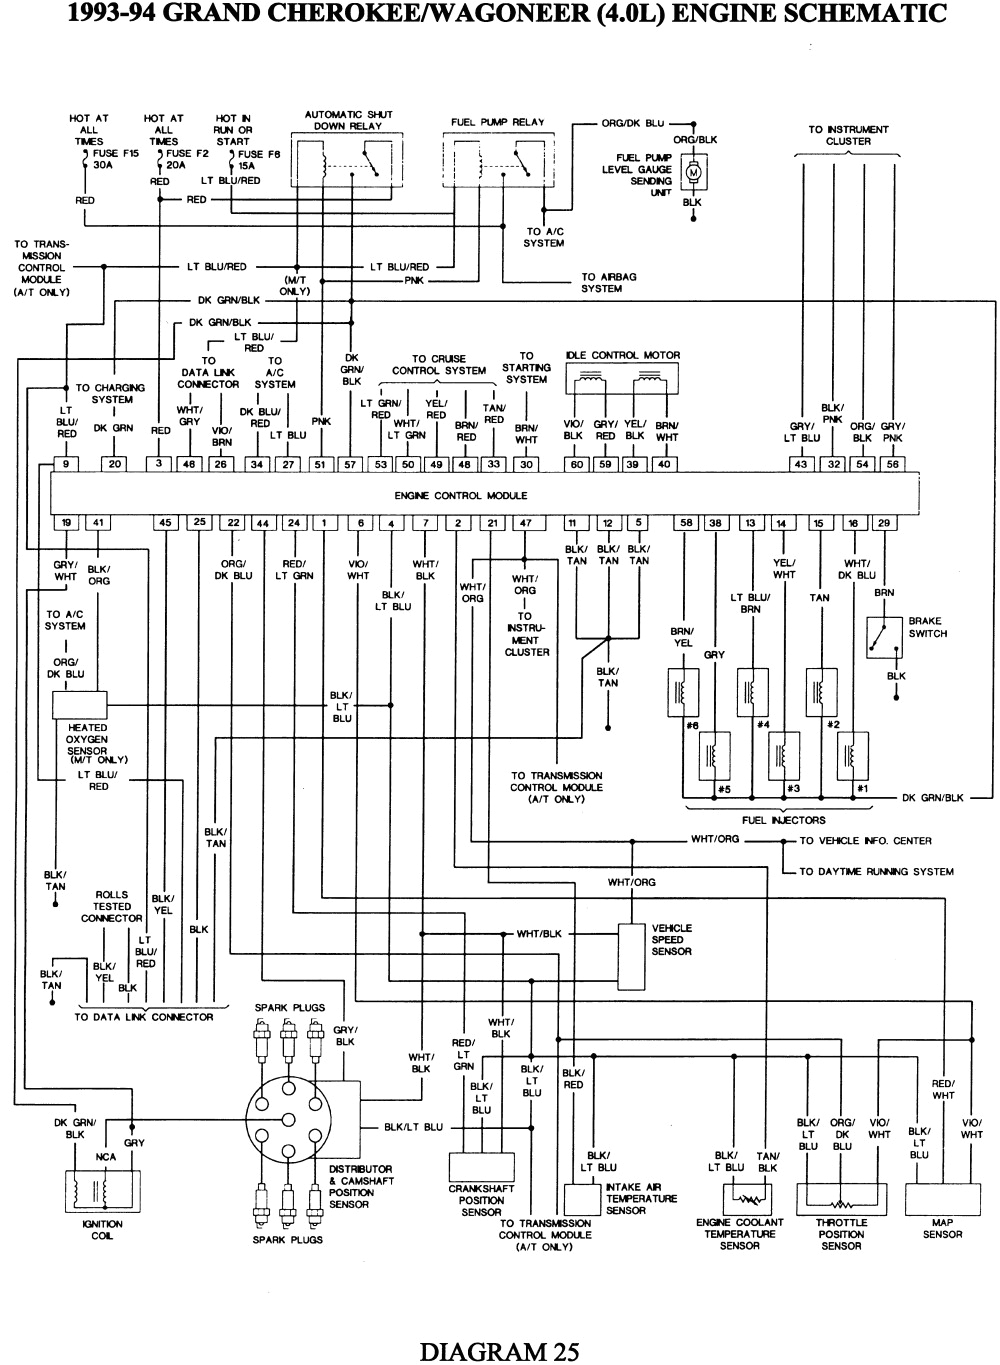 2005 Jeep Grand Cherokee Wiring Diagram from autocardesign.org